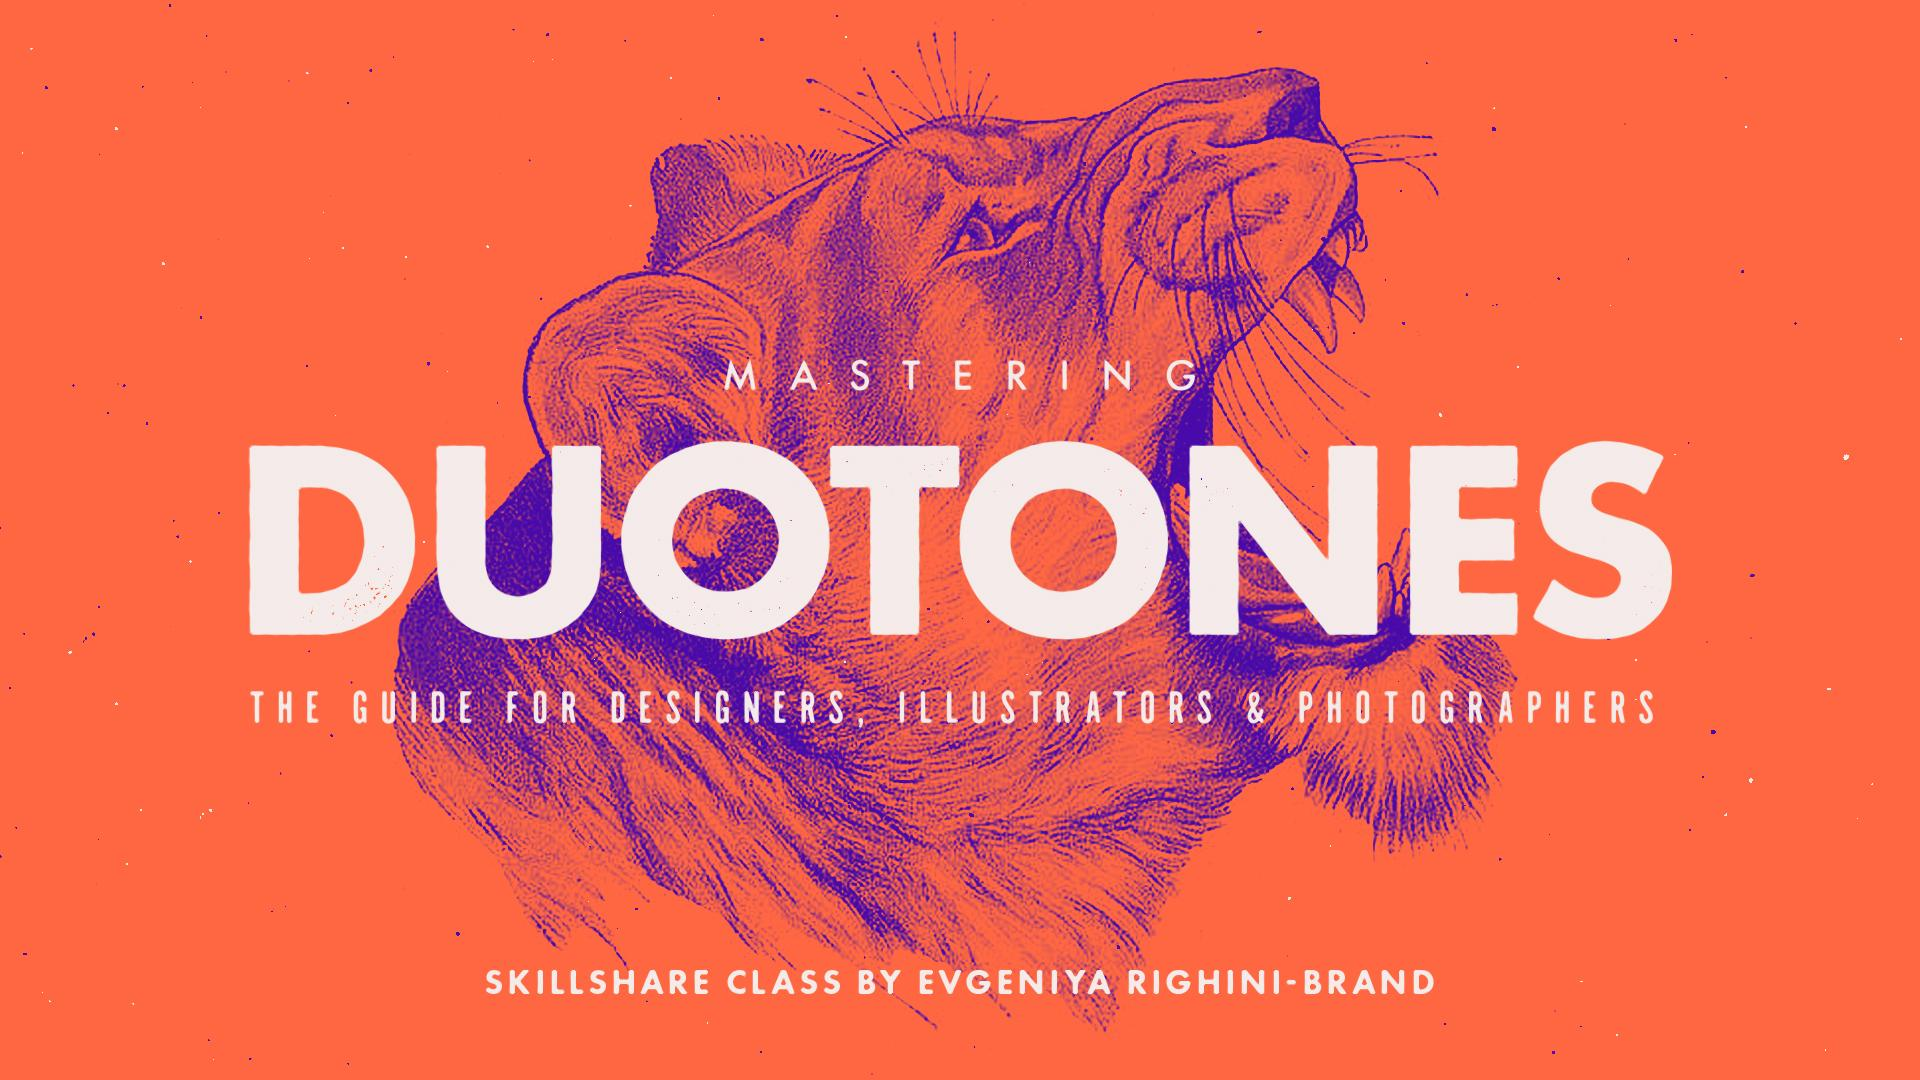 Photoshop Classes Mastering Duotones In Photoshop Evgeniya Dominic Righini Brand